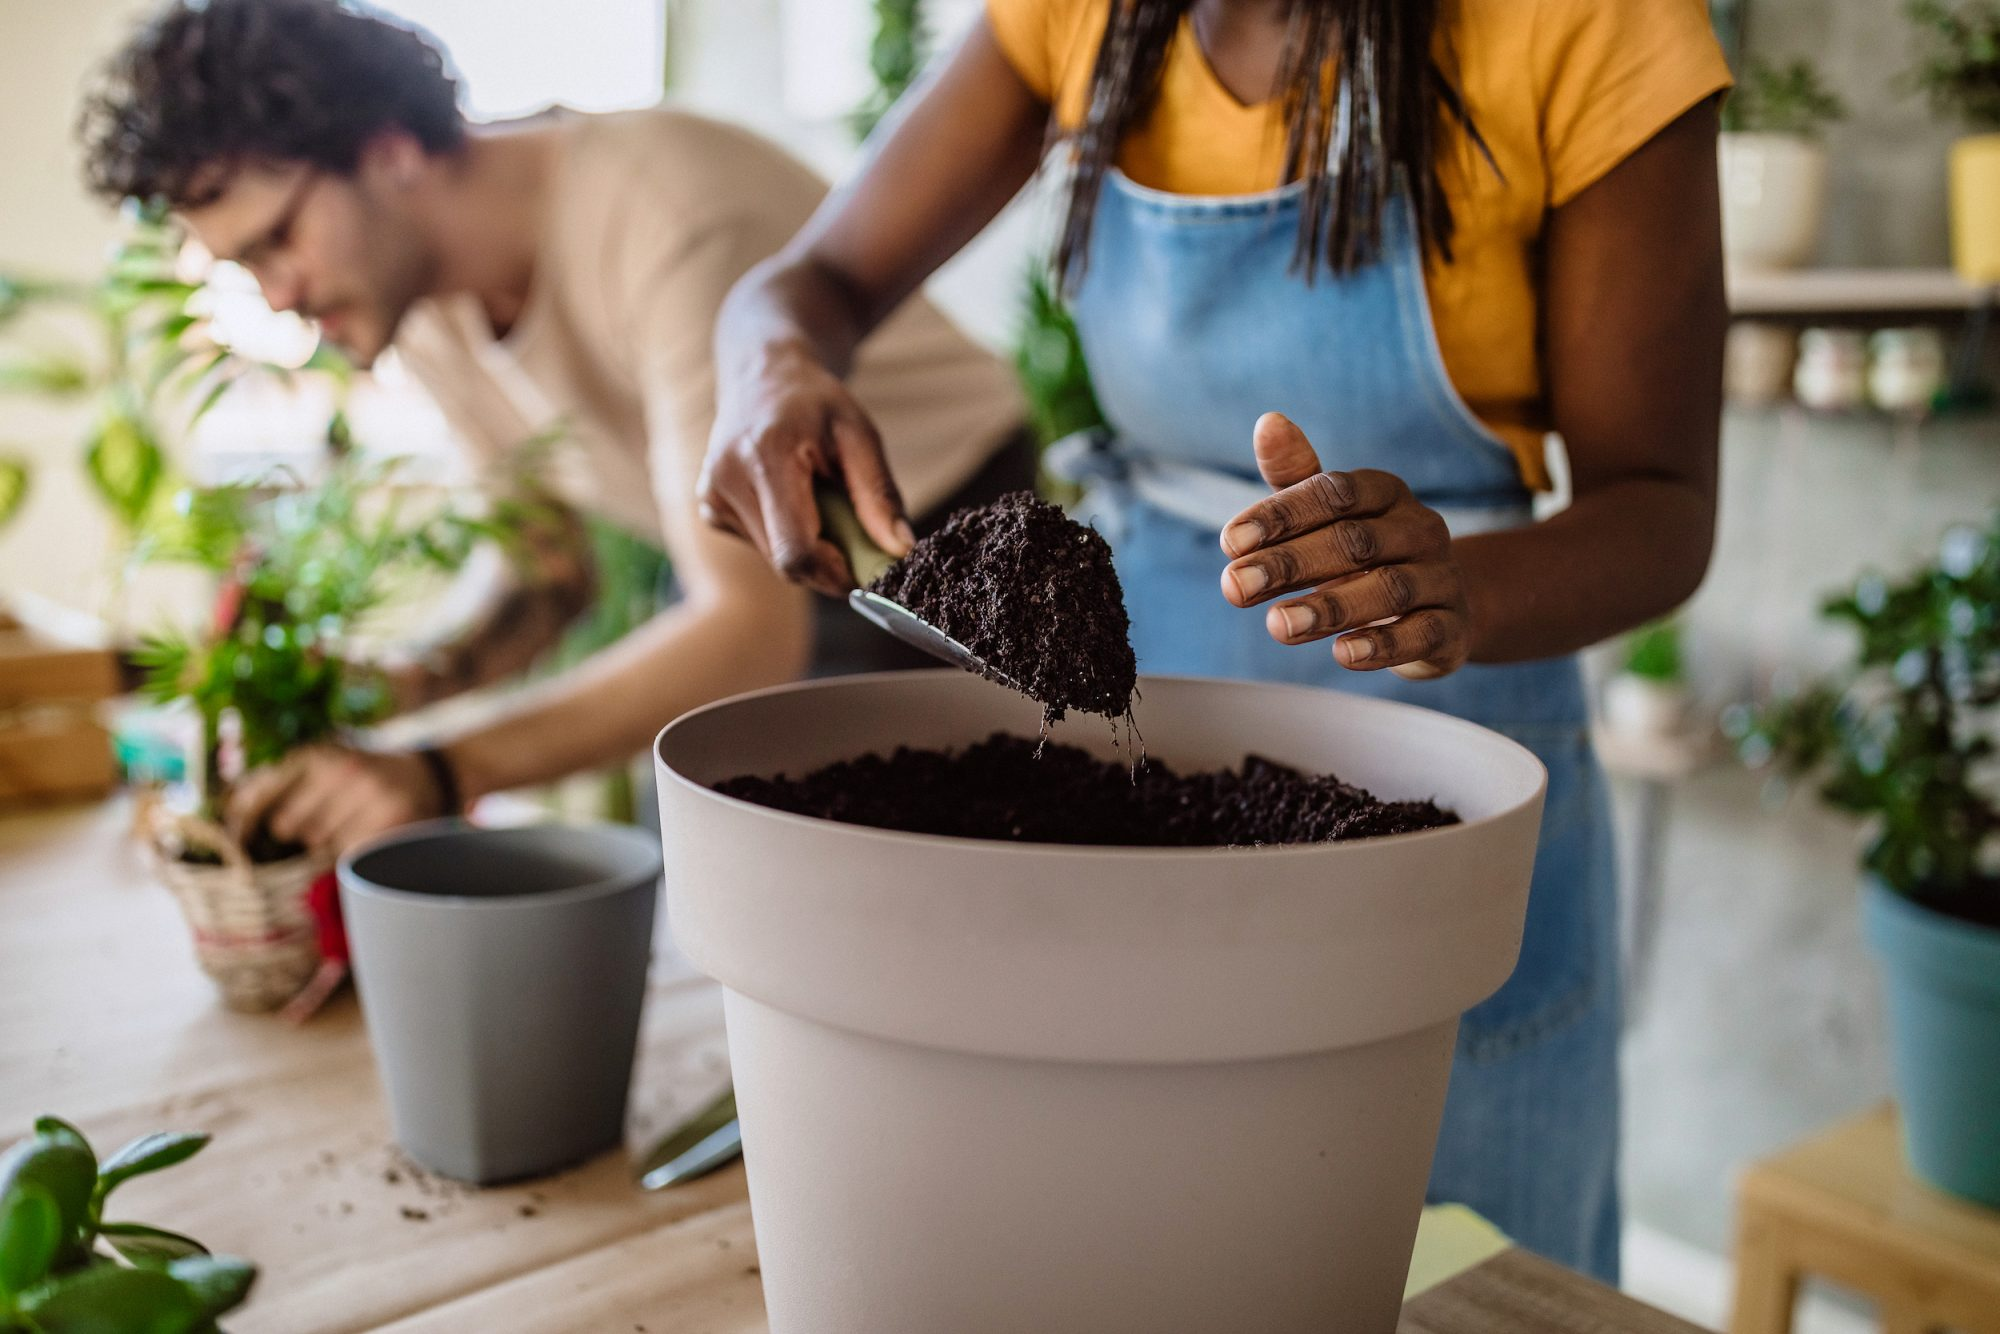 Woman repotting house plant in pot